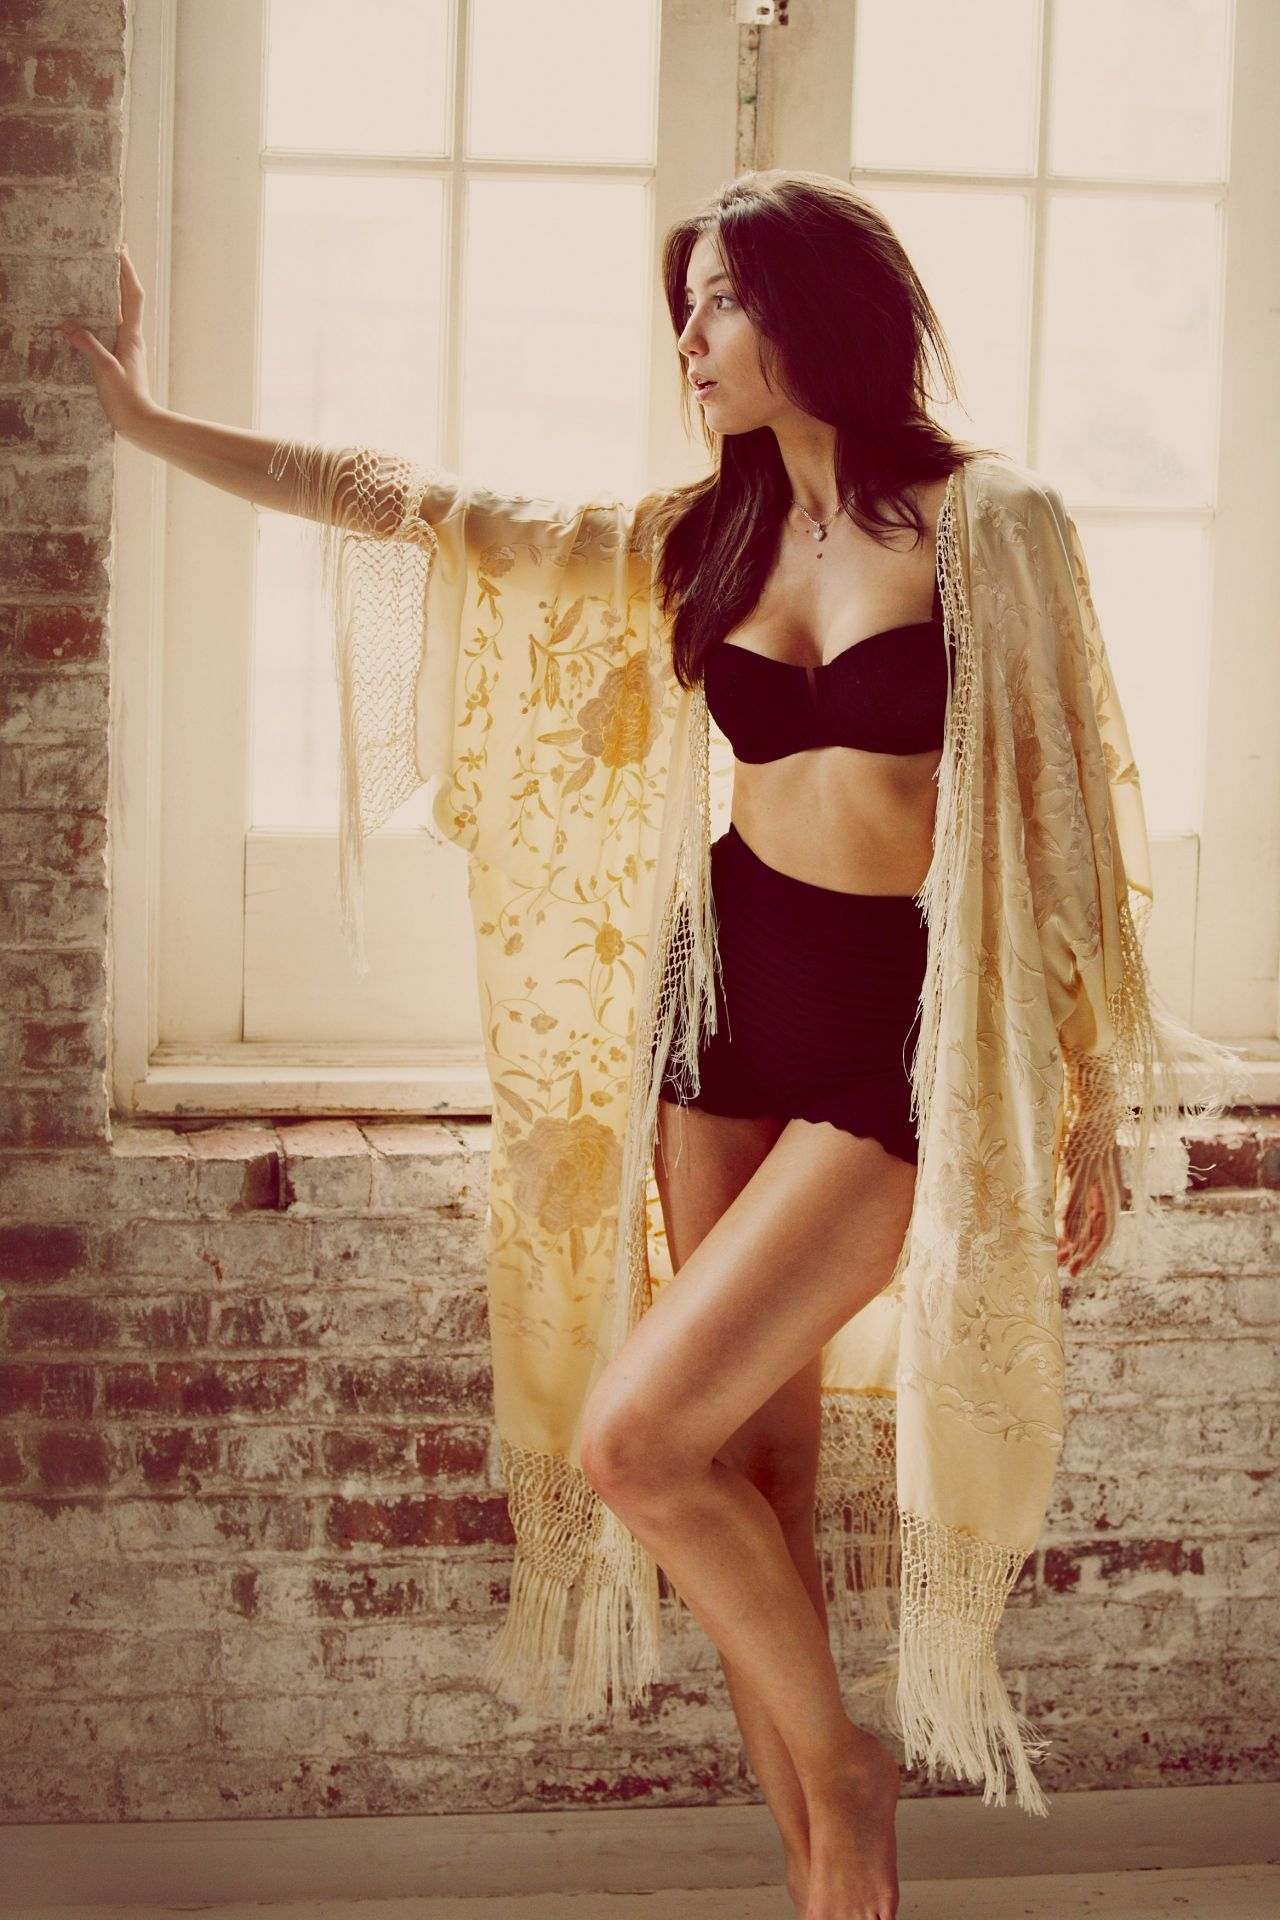 Daisy Lowe - Free People Intimates Photoshoot (2013)